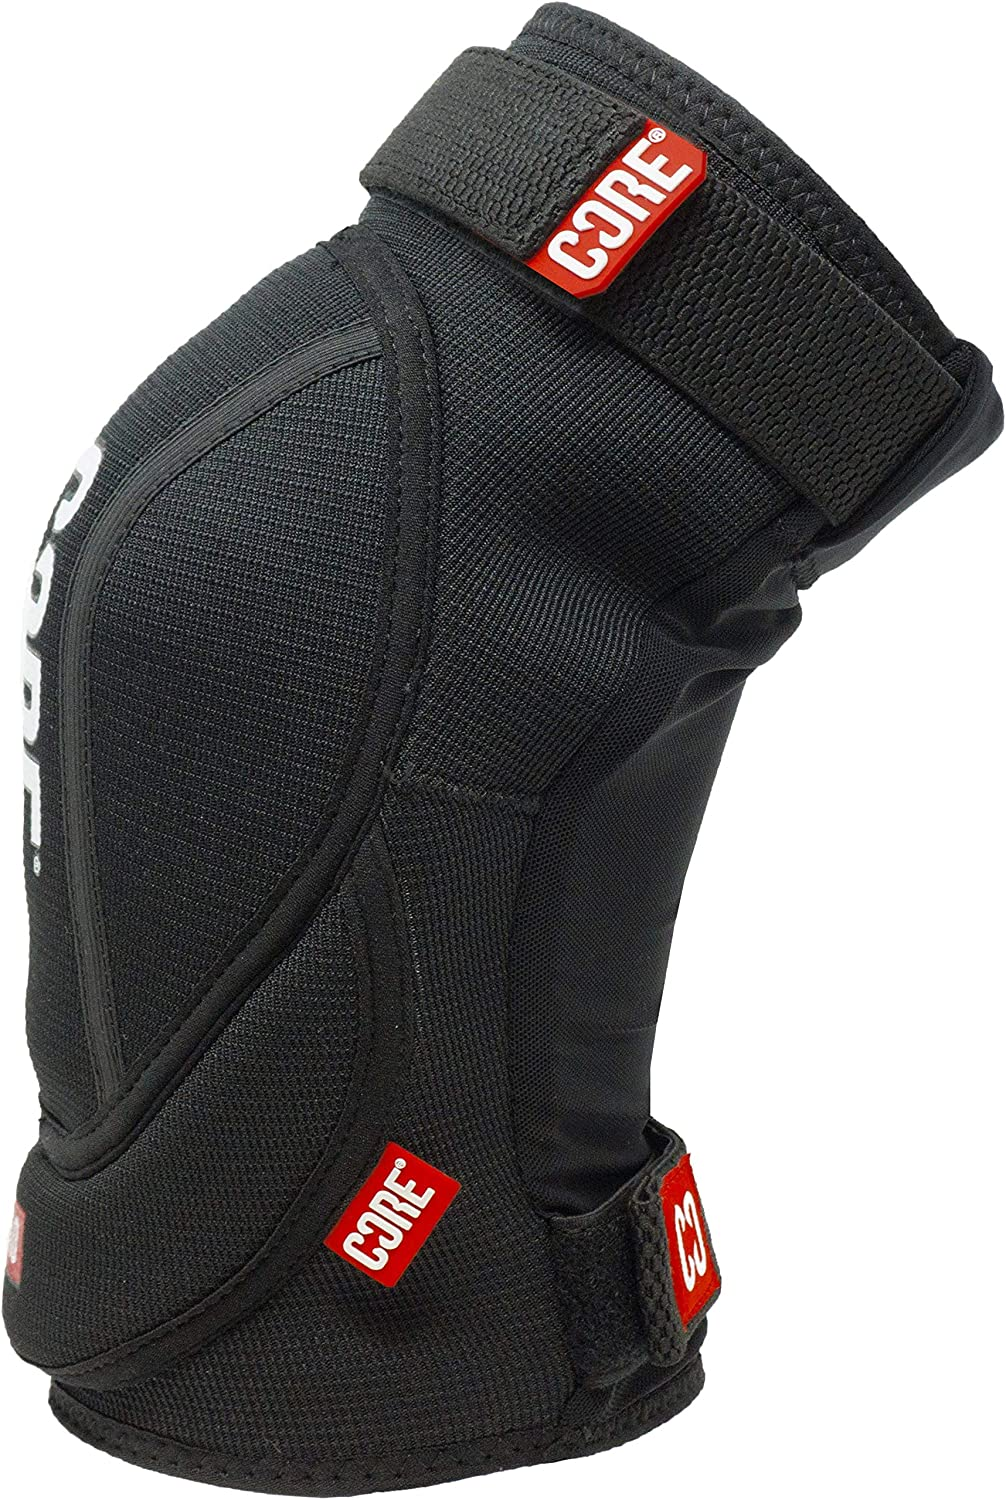 CORE Protection Pro Knie Gasket Knieschoner